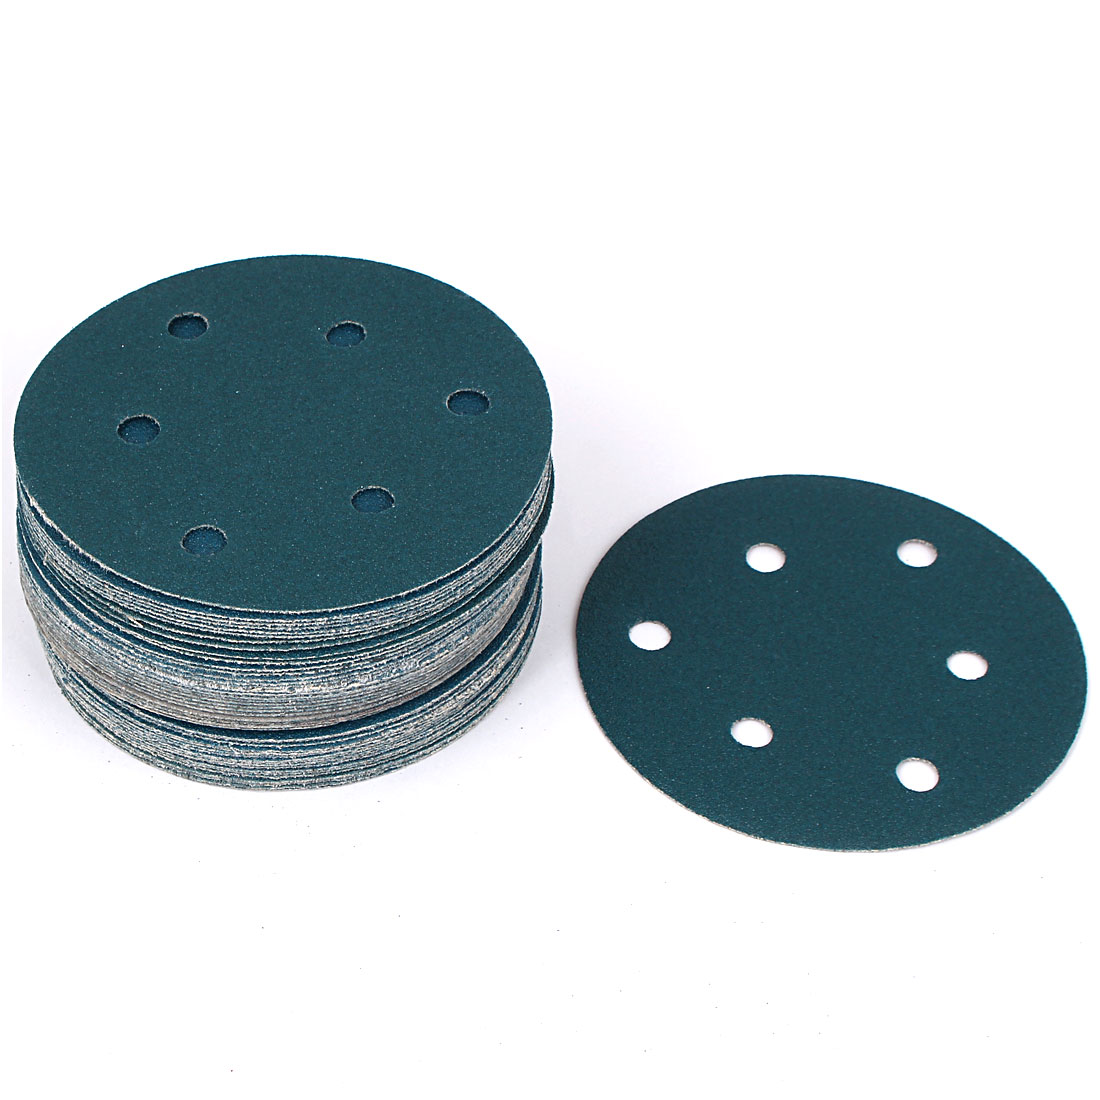 "5"" Sandpaper Auto Car Paint Polishing Sanding Disc Vlcro 6 Holes 80 Grit 50pcs"